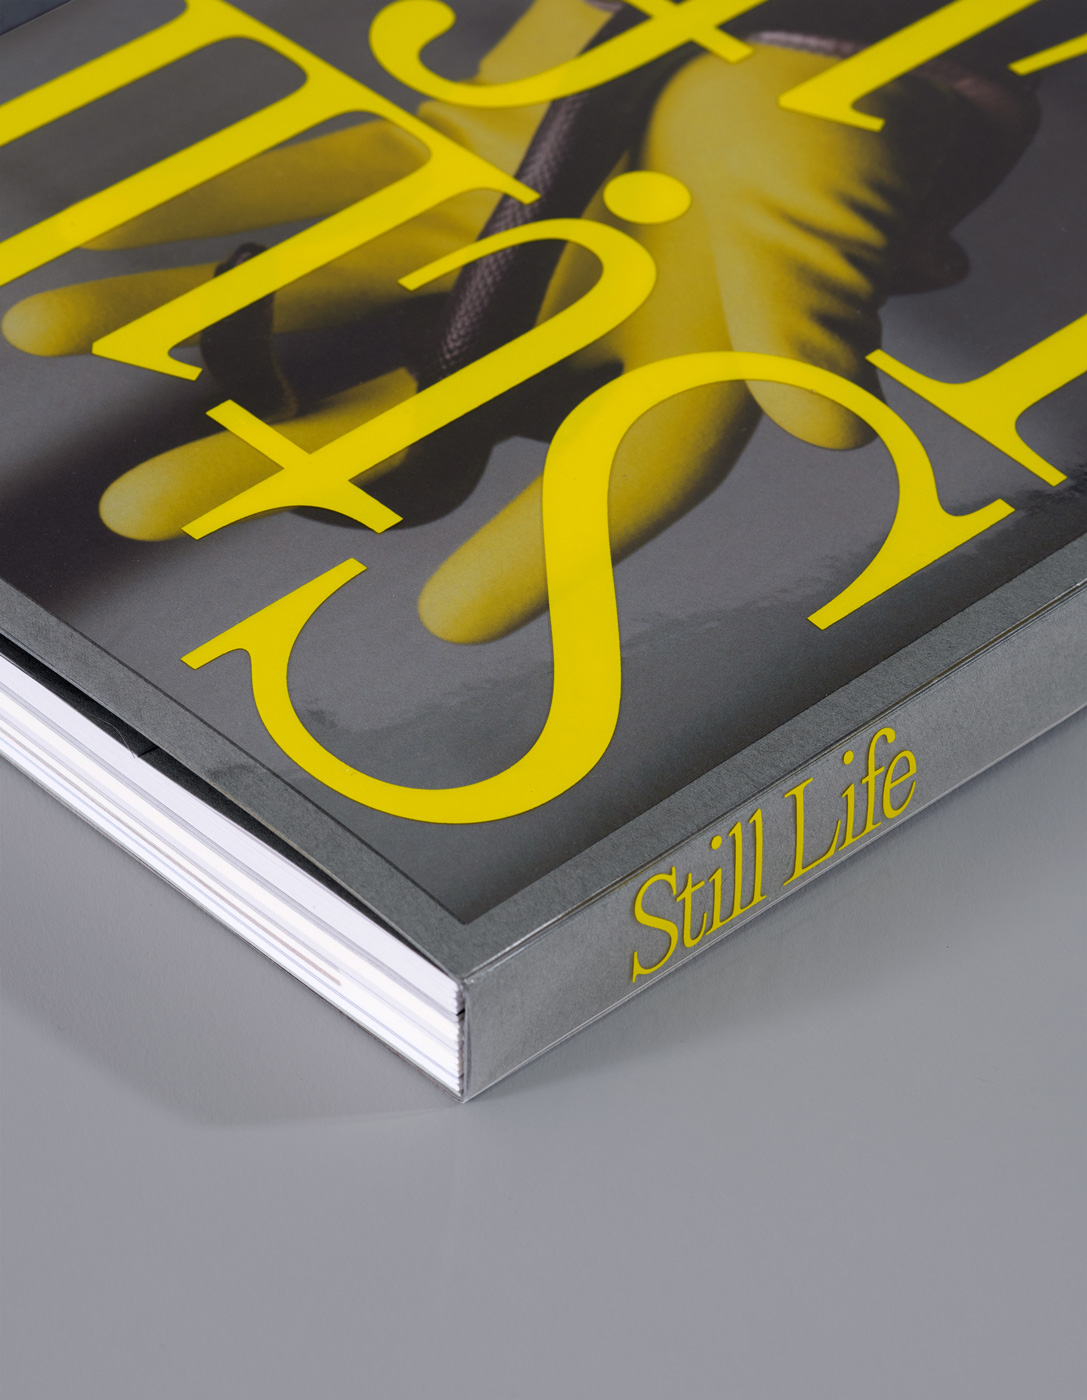 03 collide24 samepaper - The book Still Life, published by Same Paper and designed by Han Gao, invites thirteen photographers to reflect on the medium in times of the pandemic